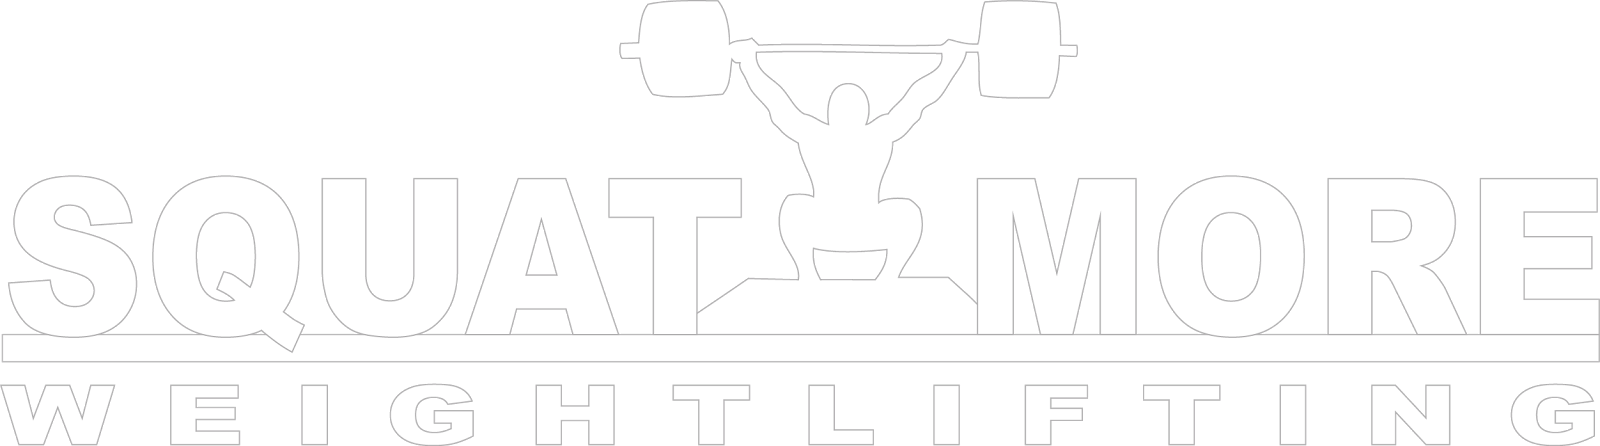 Squatmore Weightlifting